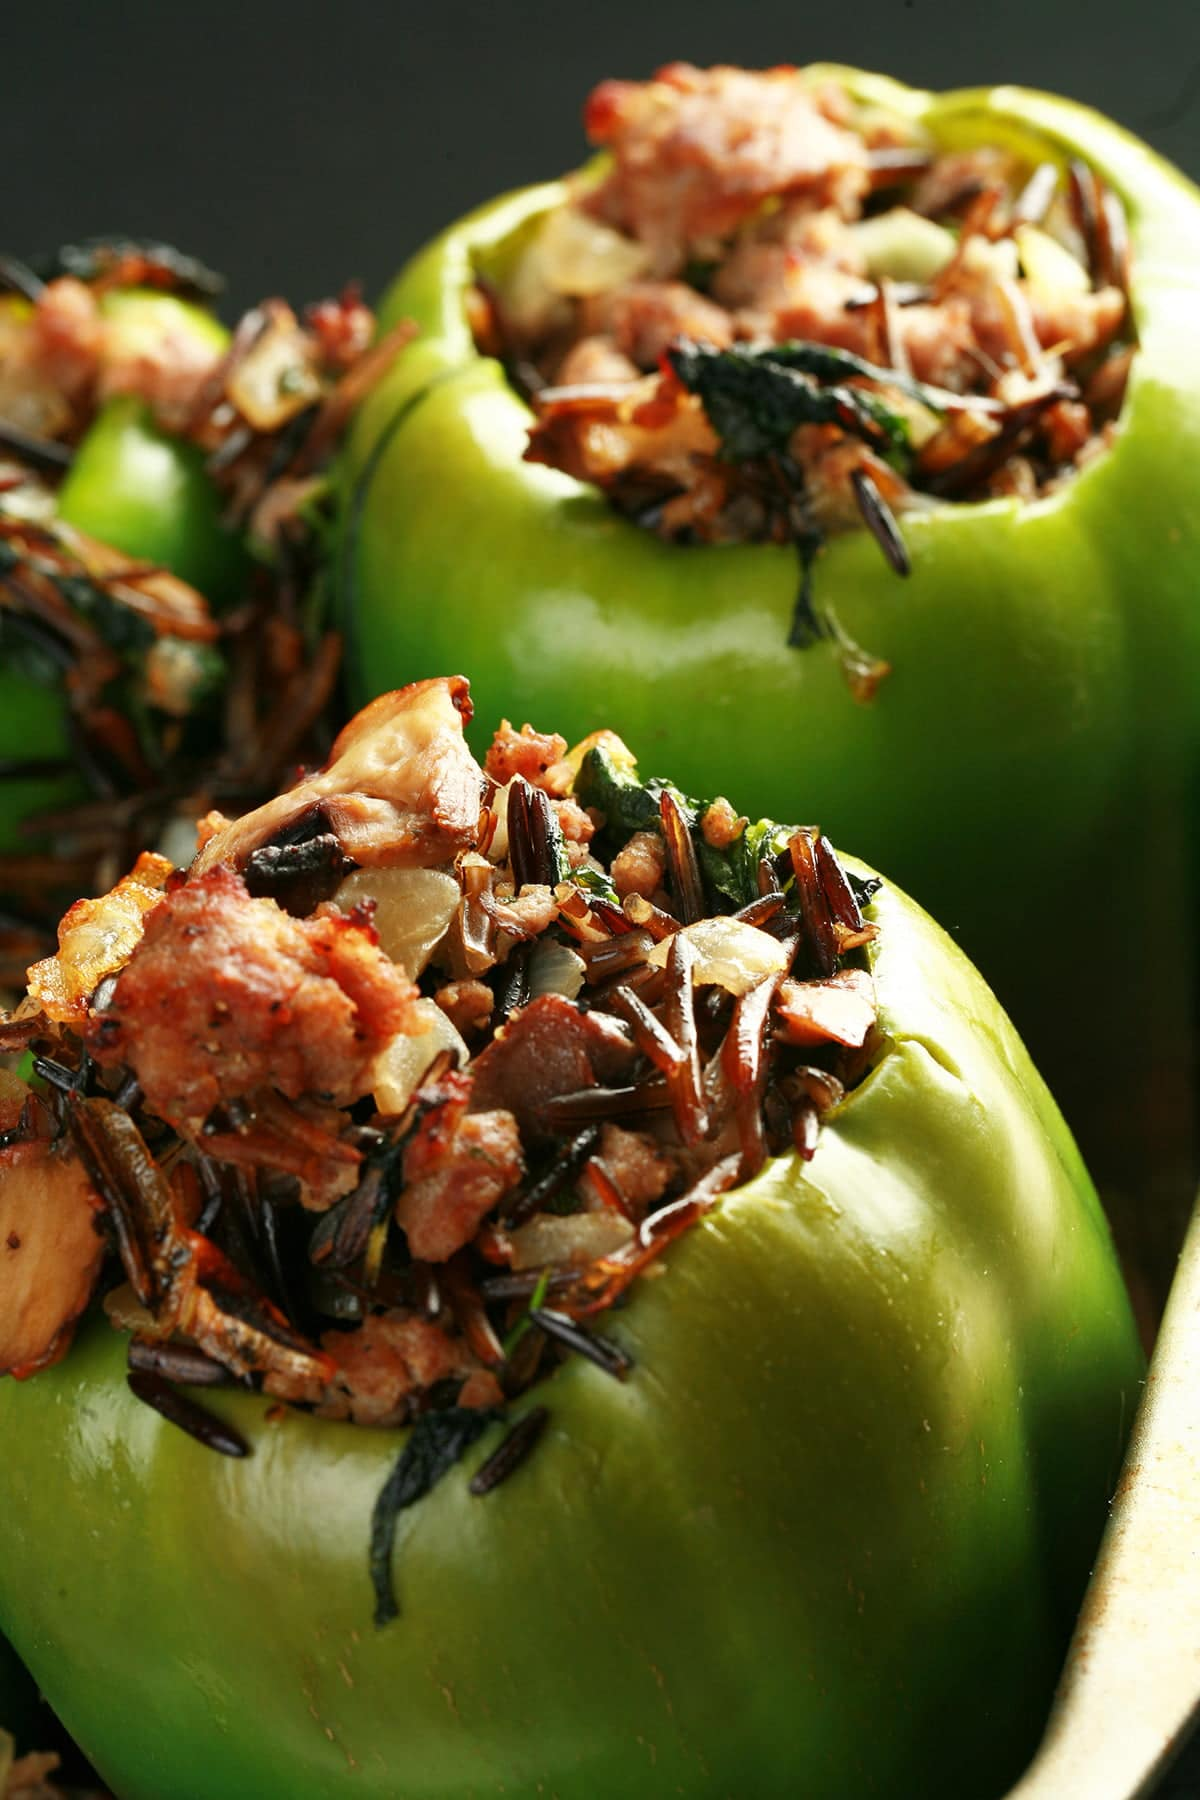 Close up photo of a pan of green peppers that have been hollowed out and stuffed with wild rice, mushrooms, and sausage.